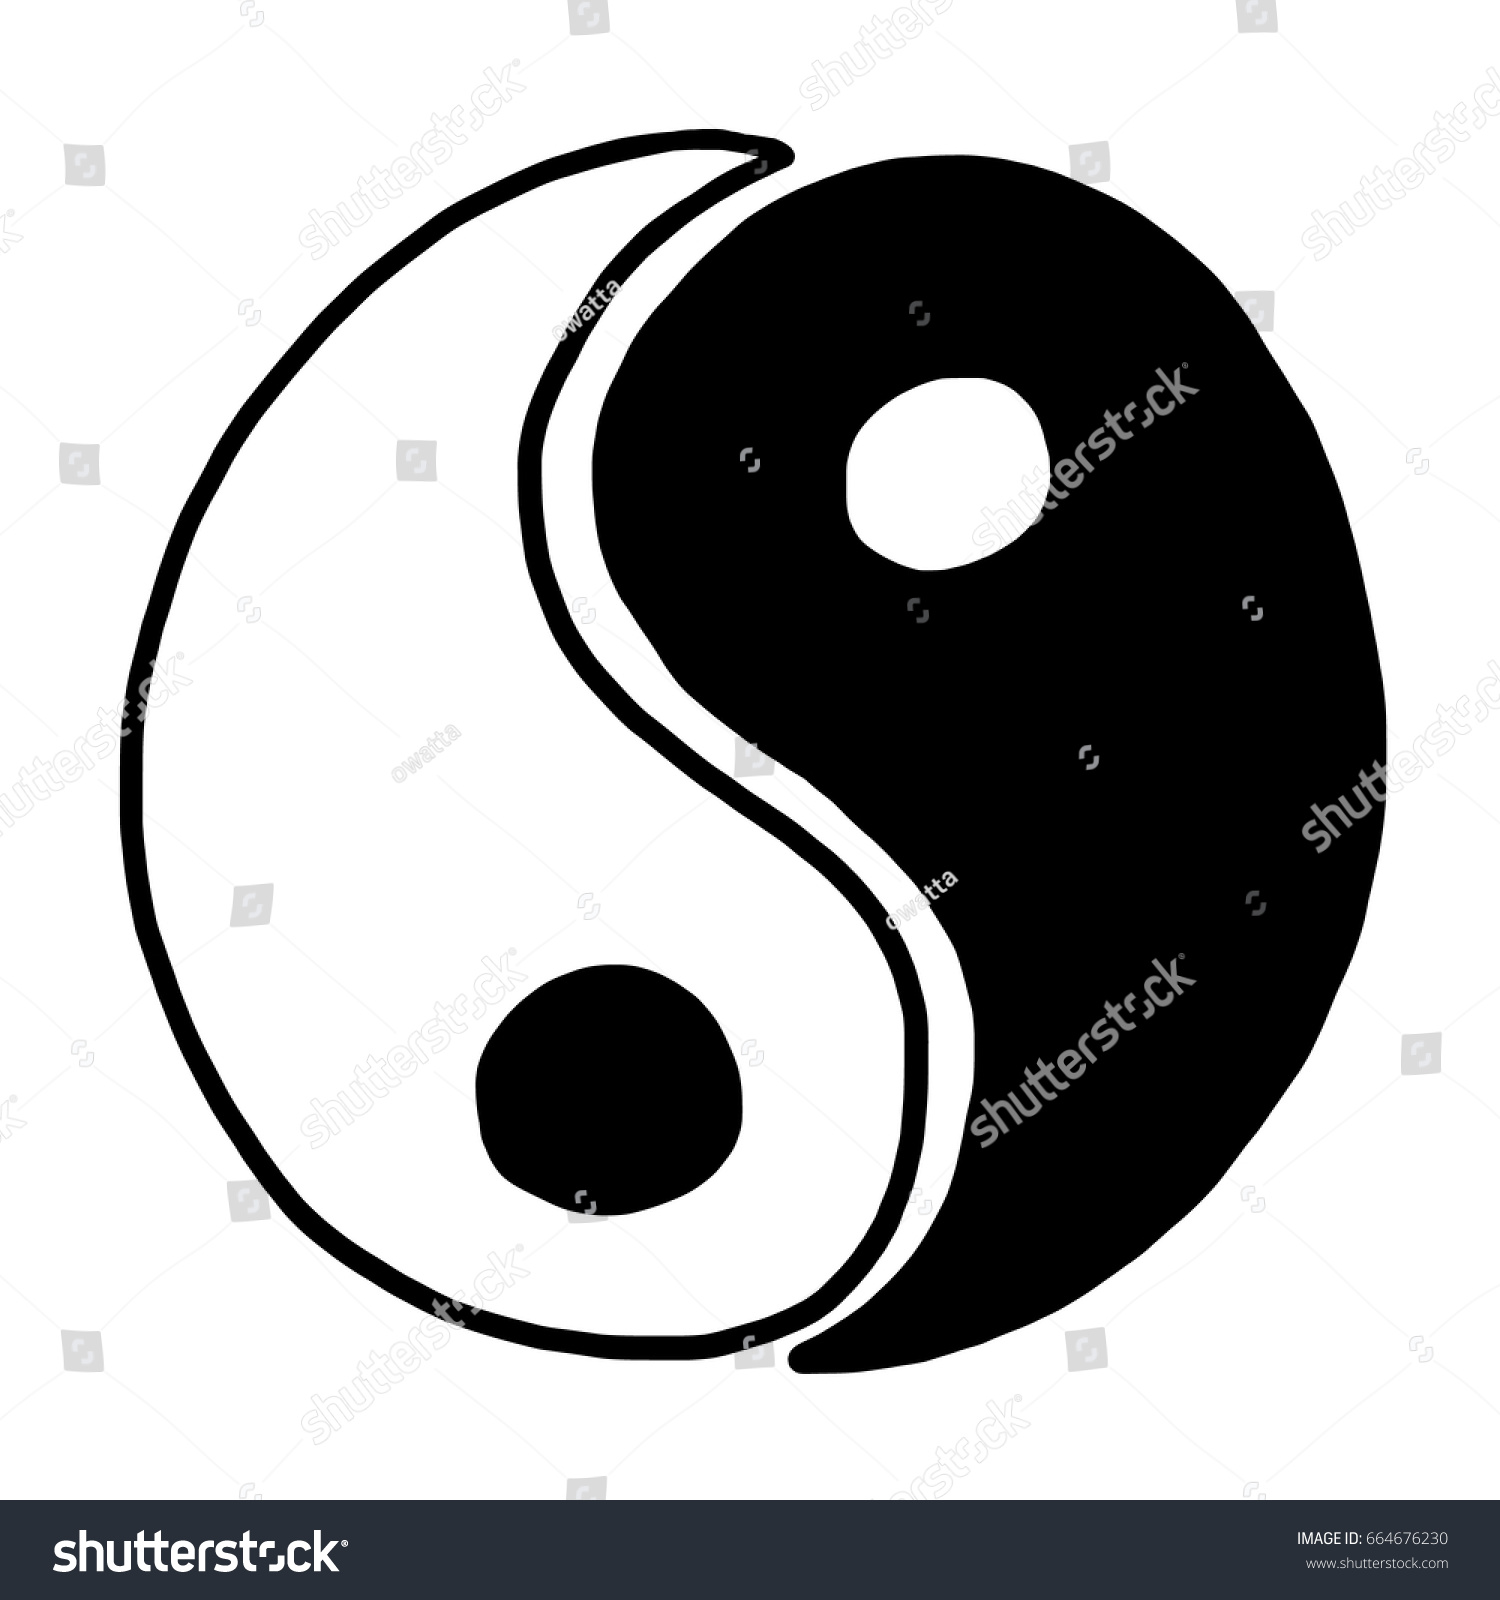 Yin yang cartoon vector illustration black stock vector for Architecture yin yang